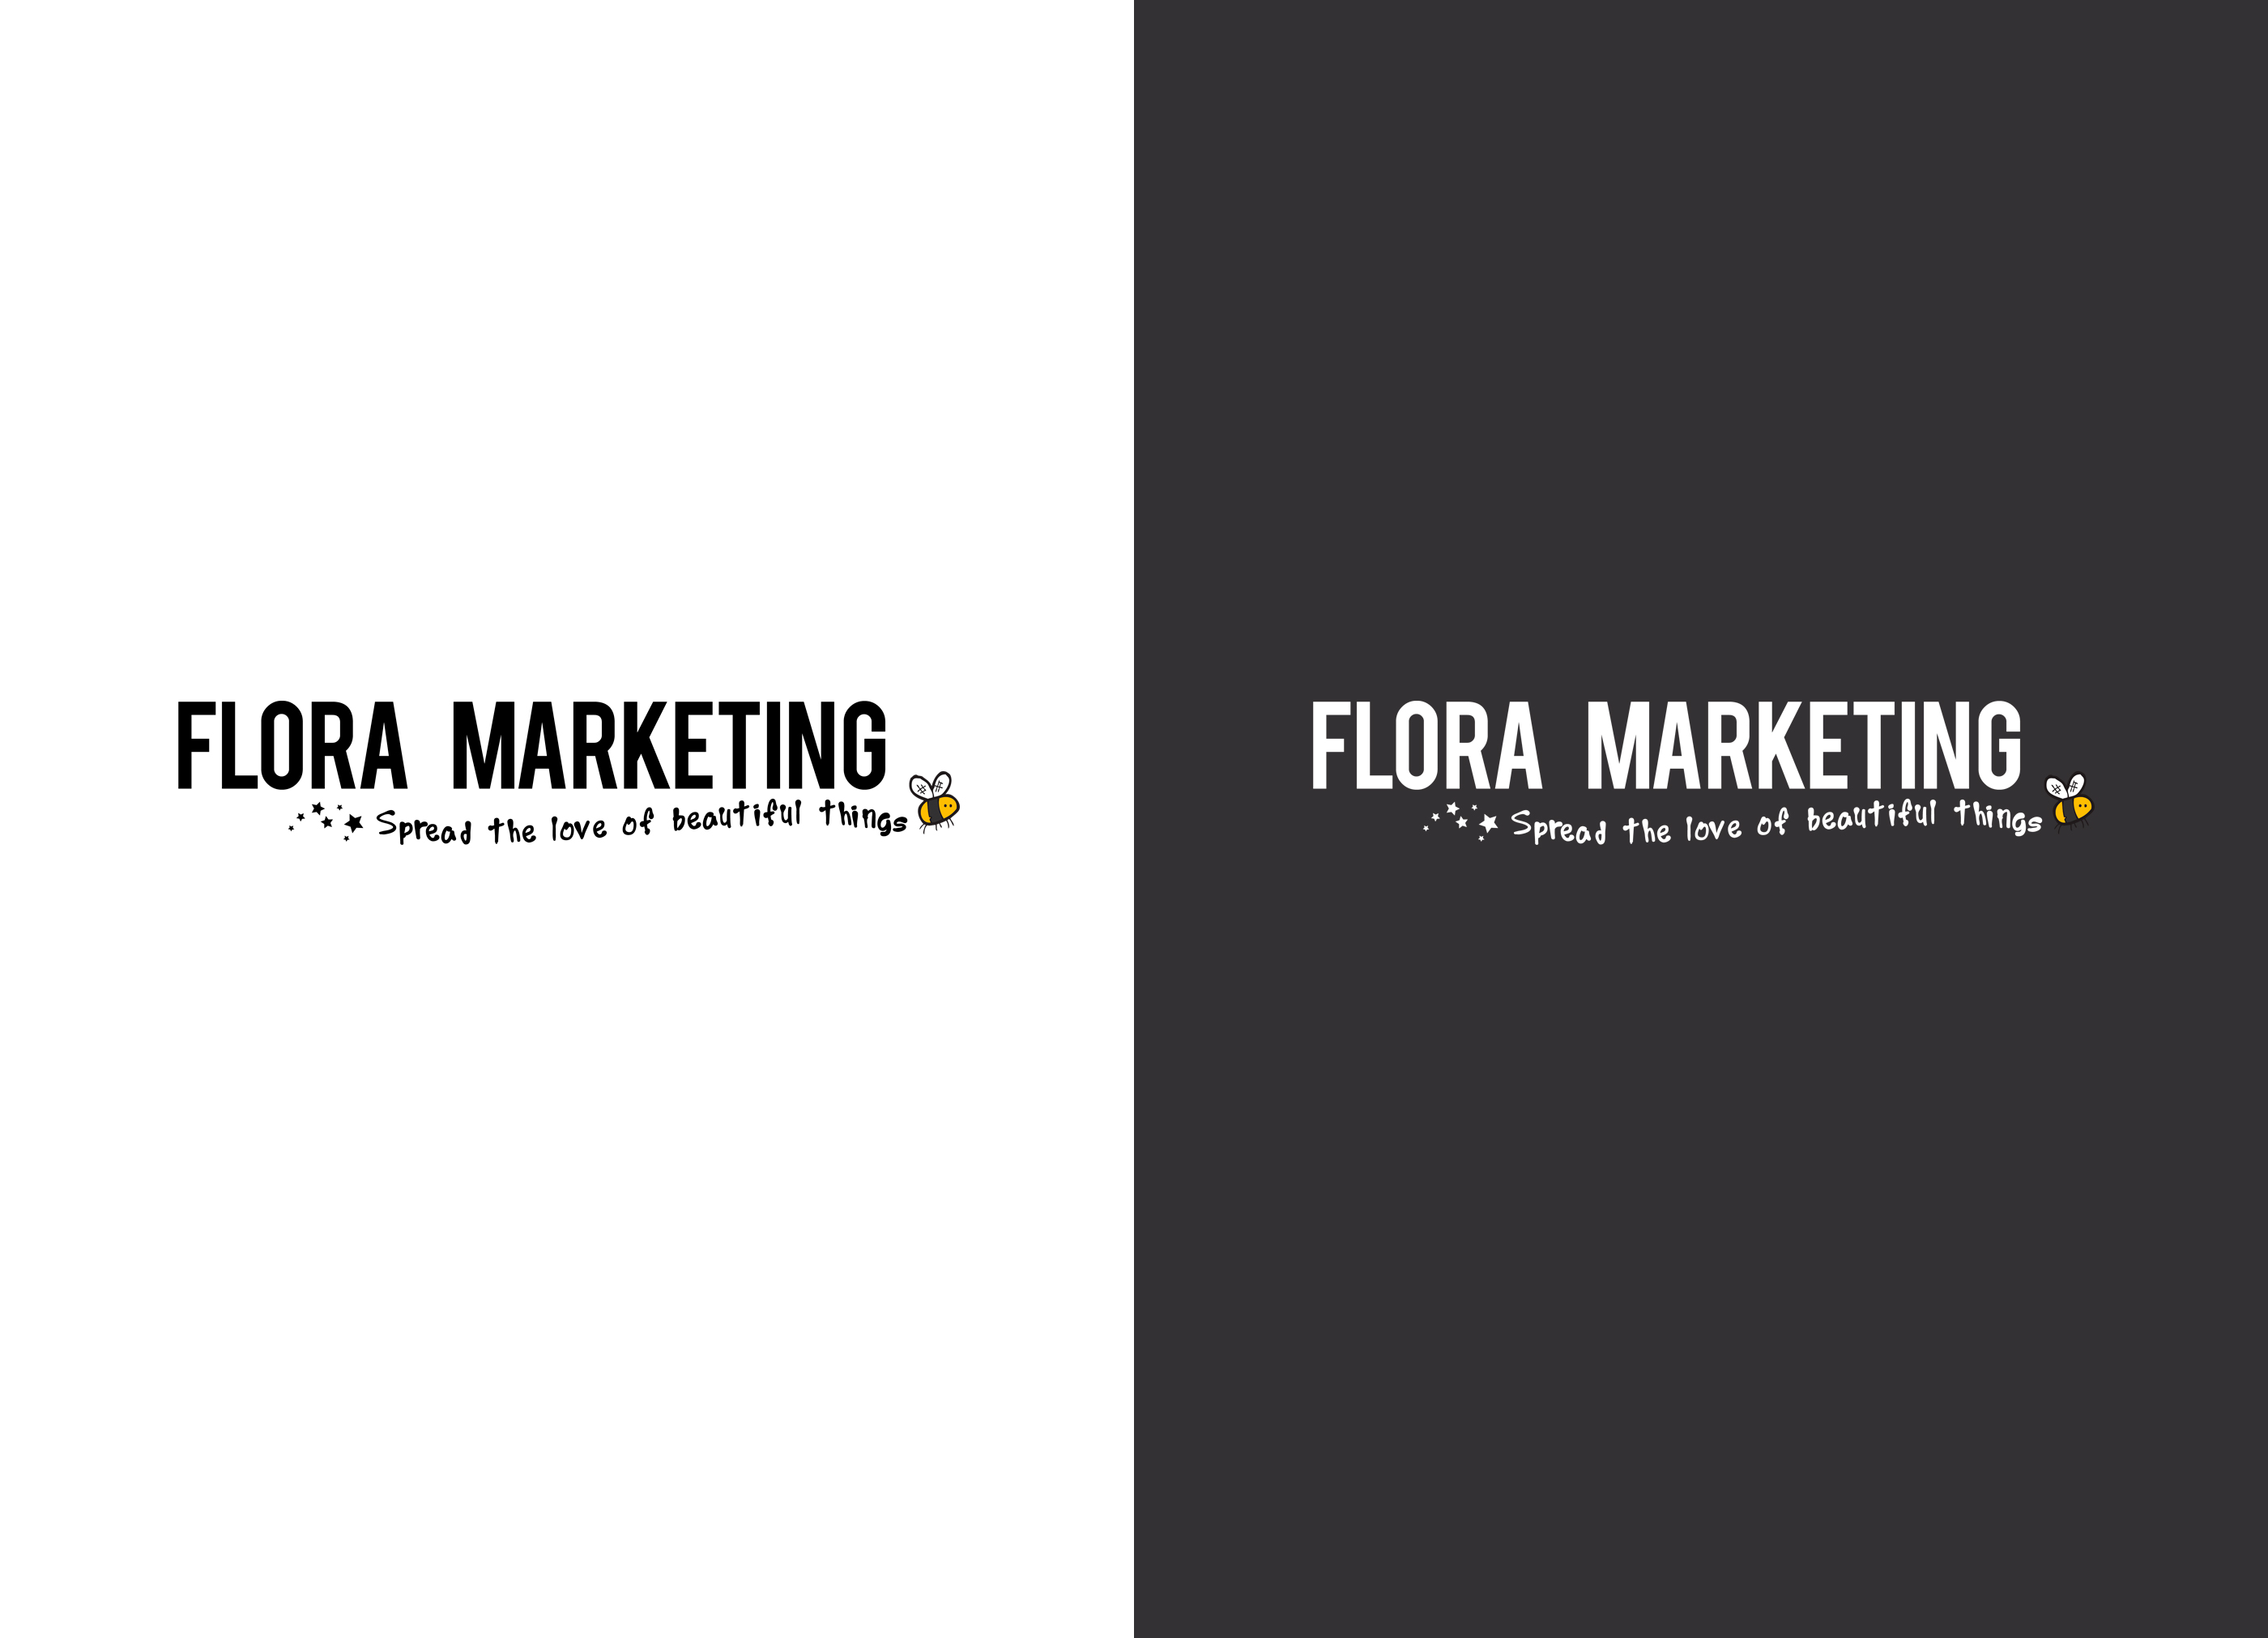 logo ontwerp design Flora Marketing door reclamebureau Activates uit Sassenheim